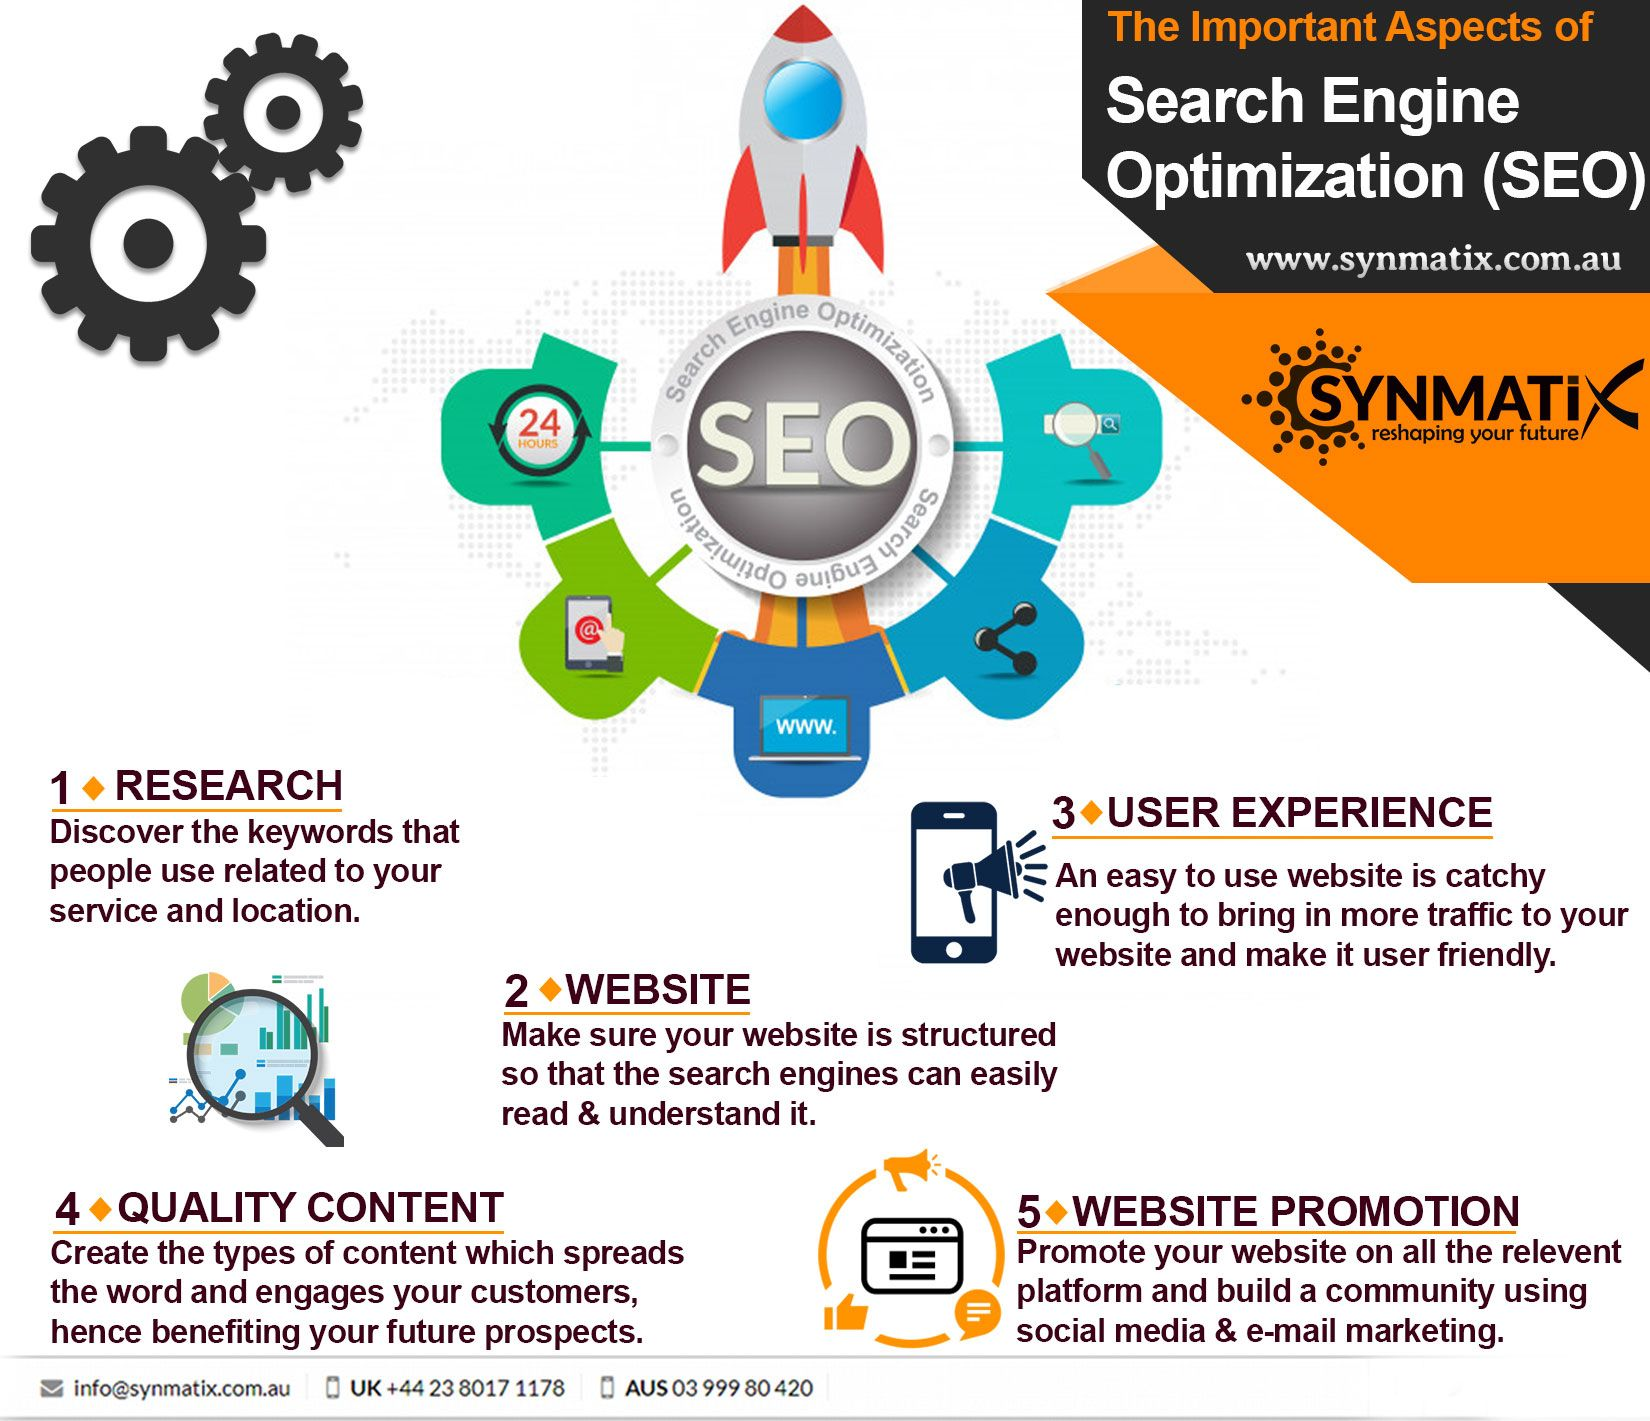 The Important Aspects of SEO Synmatix Call for